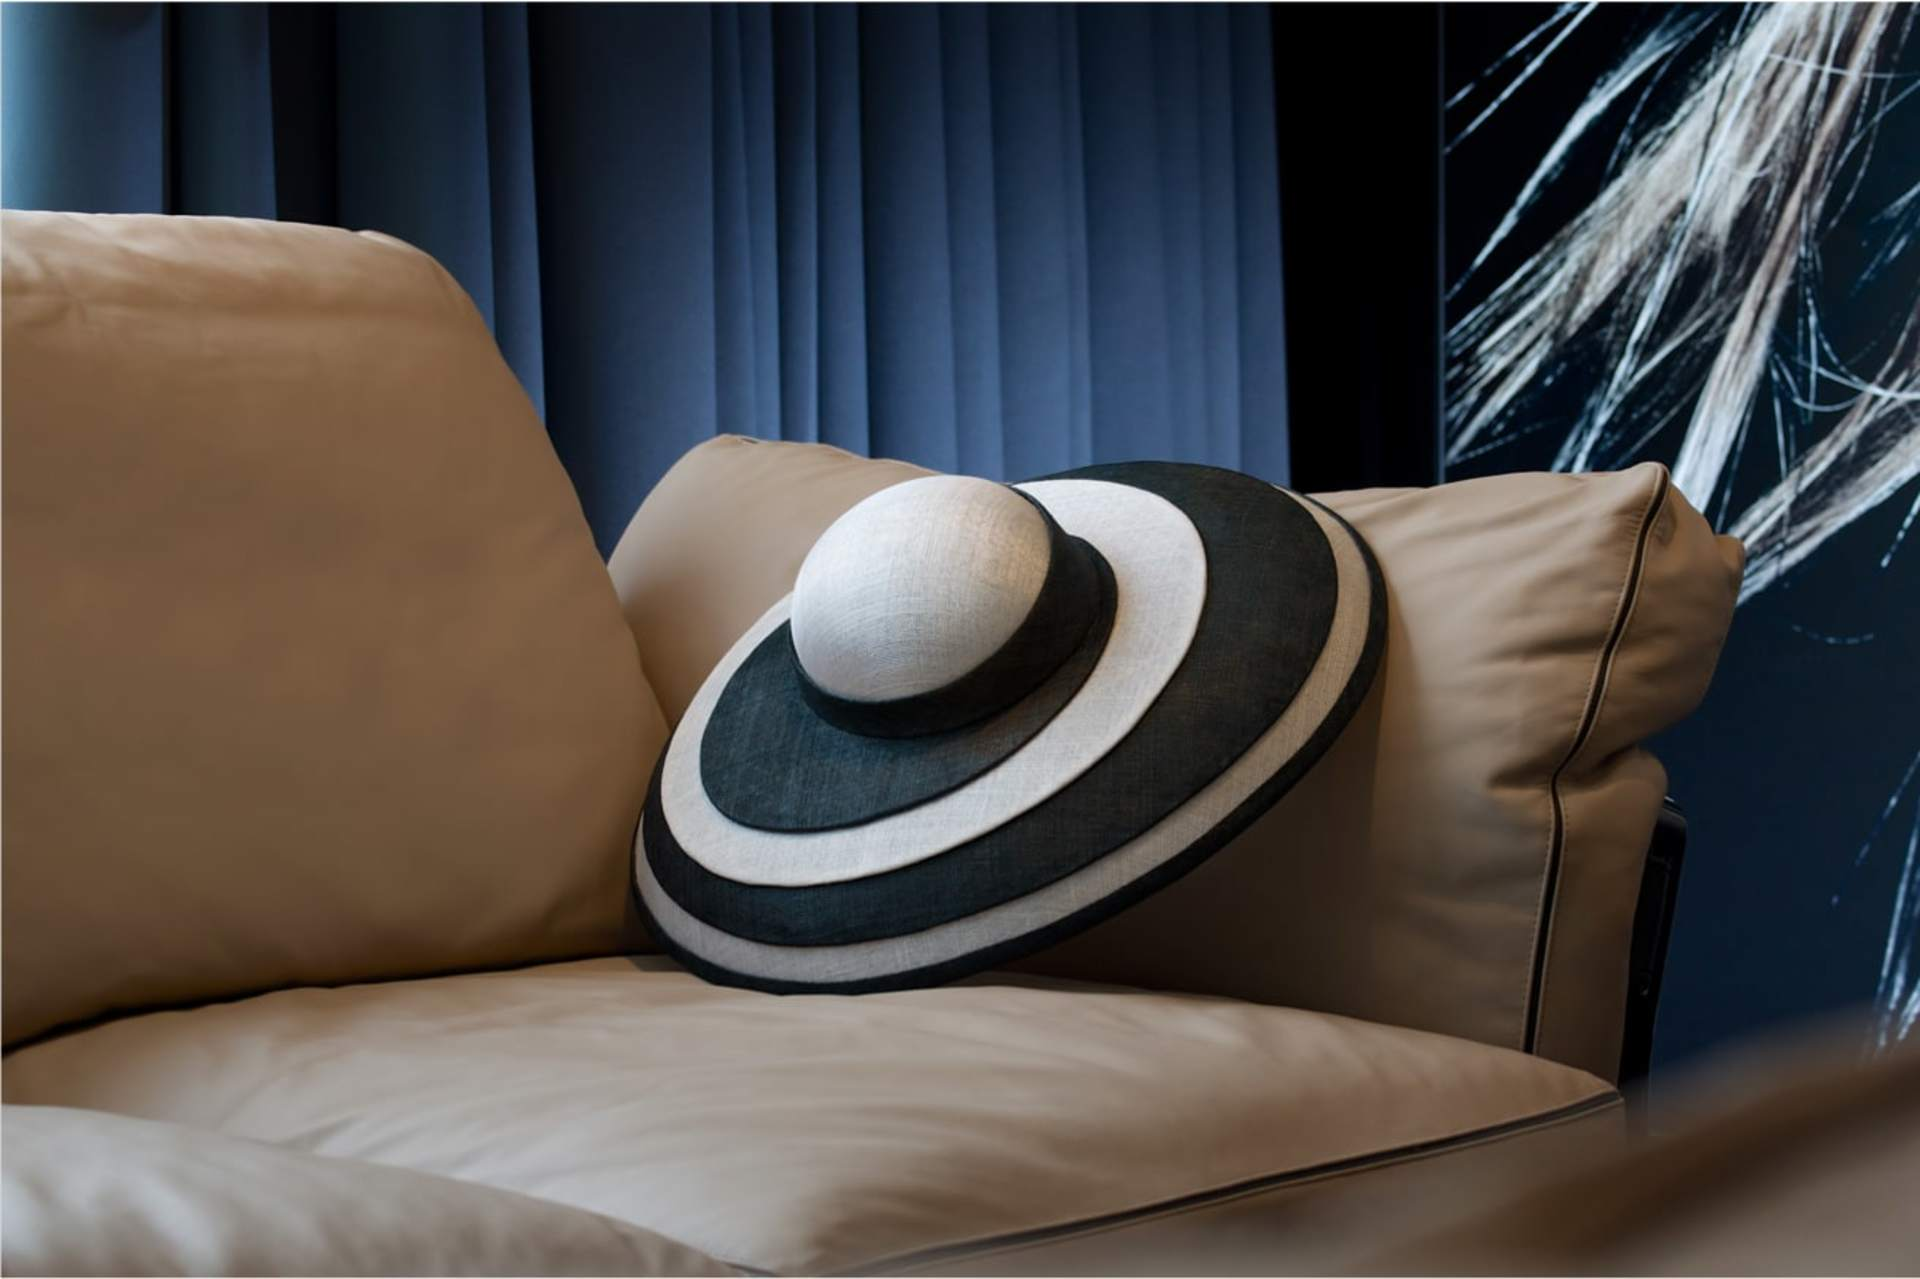 image of rolls-royce trevor morgan hat on a sofa